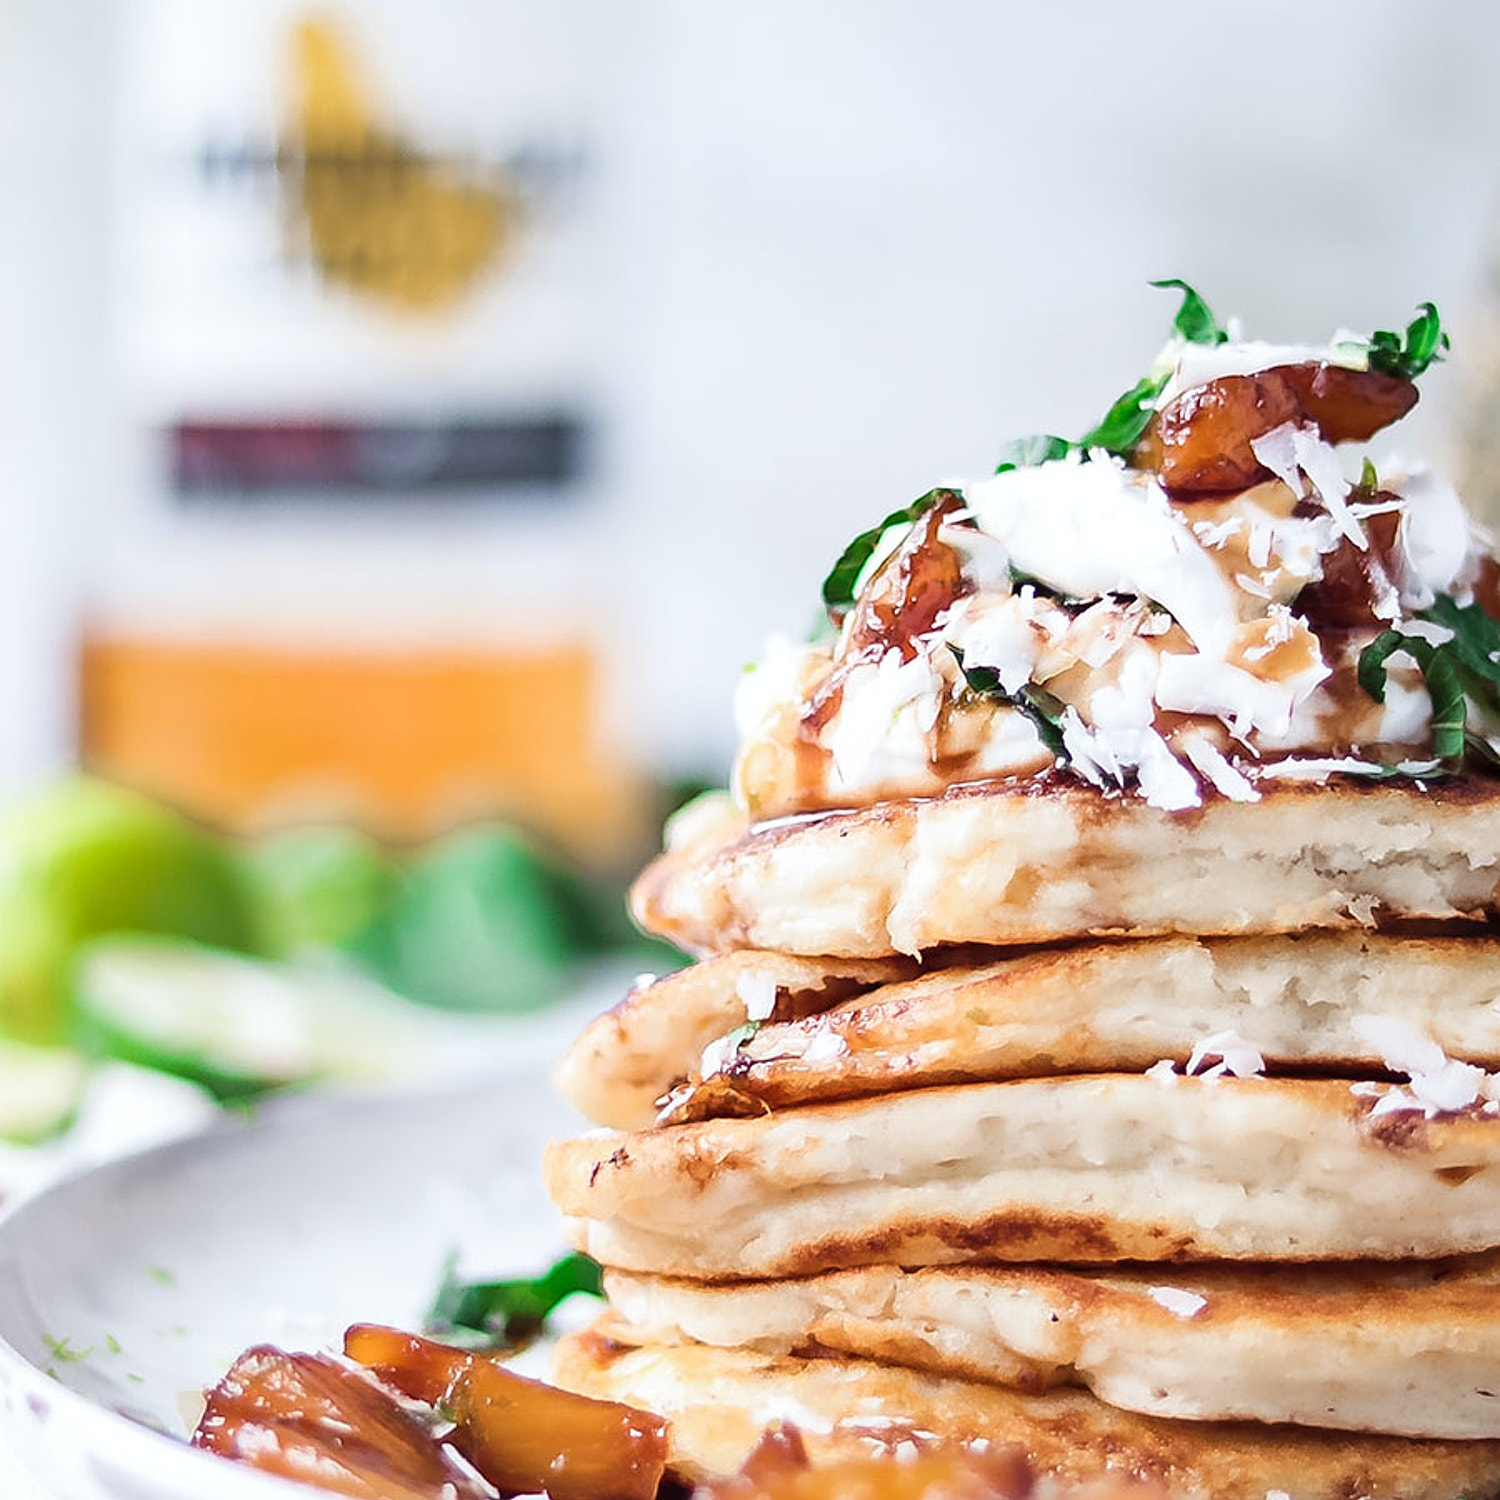 Pina Colada Pancakes. Fluffy Coconut pancakes with Caramelised Rum Pineapple